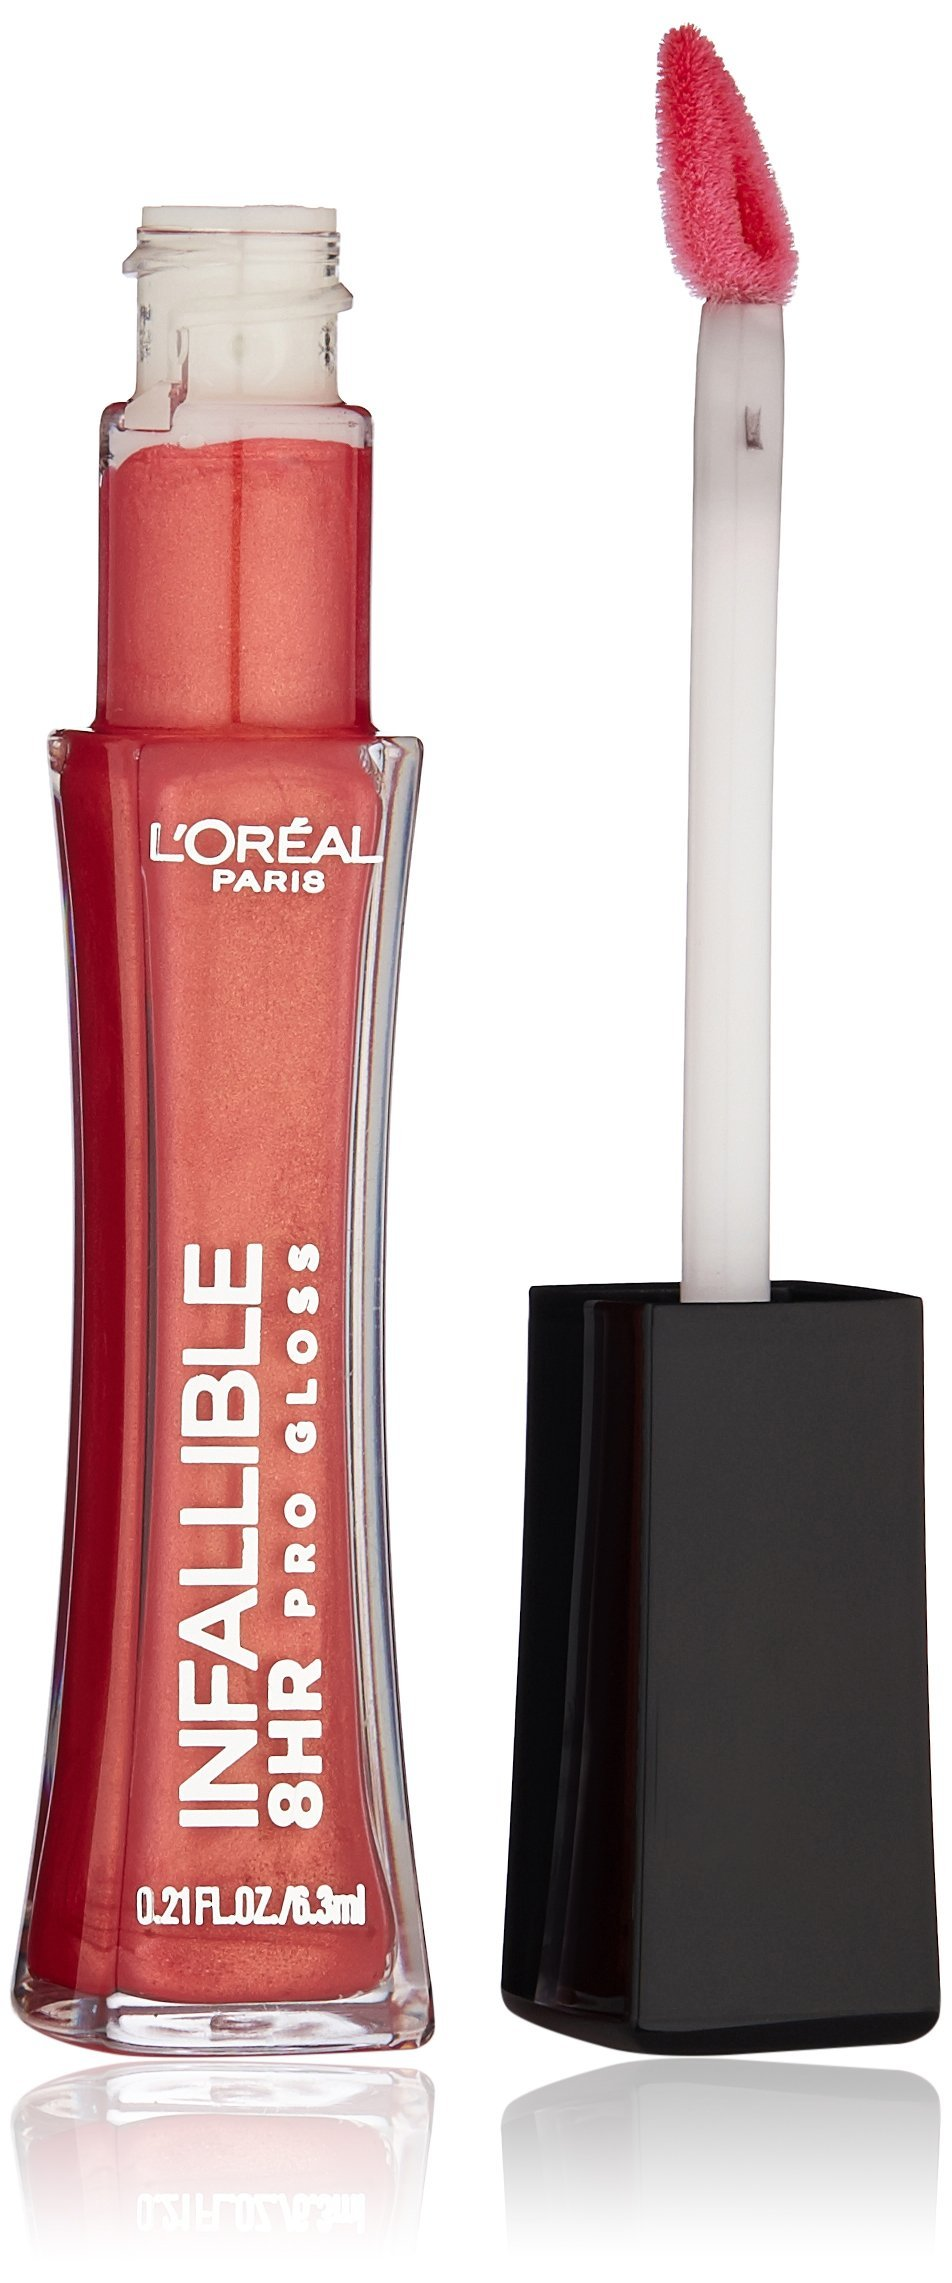 L'Oréal Paris Infallible 8 HR Pro Gloss, Fiery, 0.21 fl. oz.